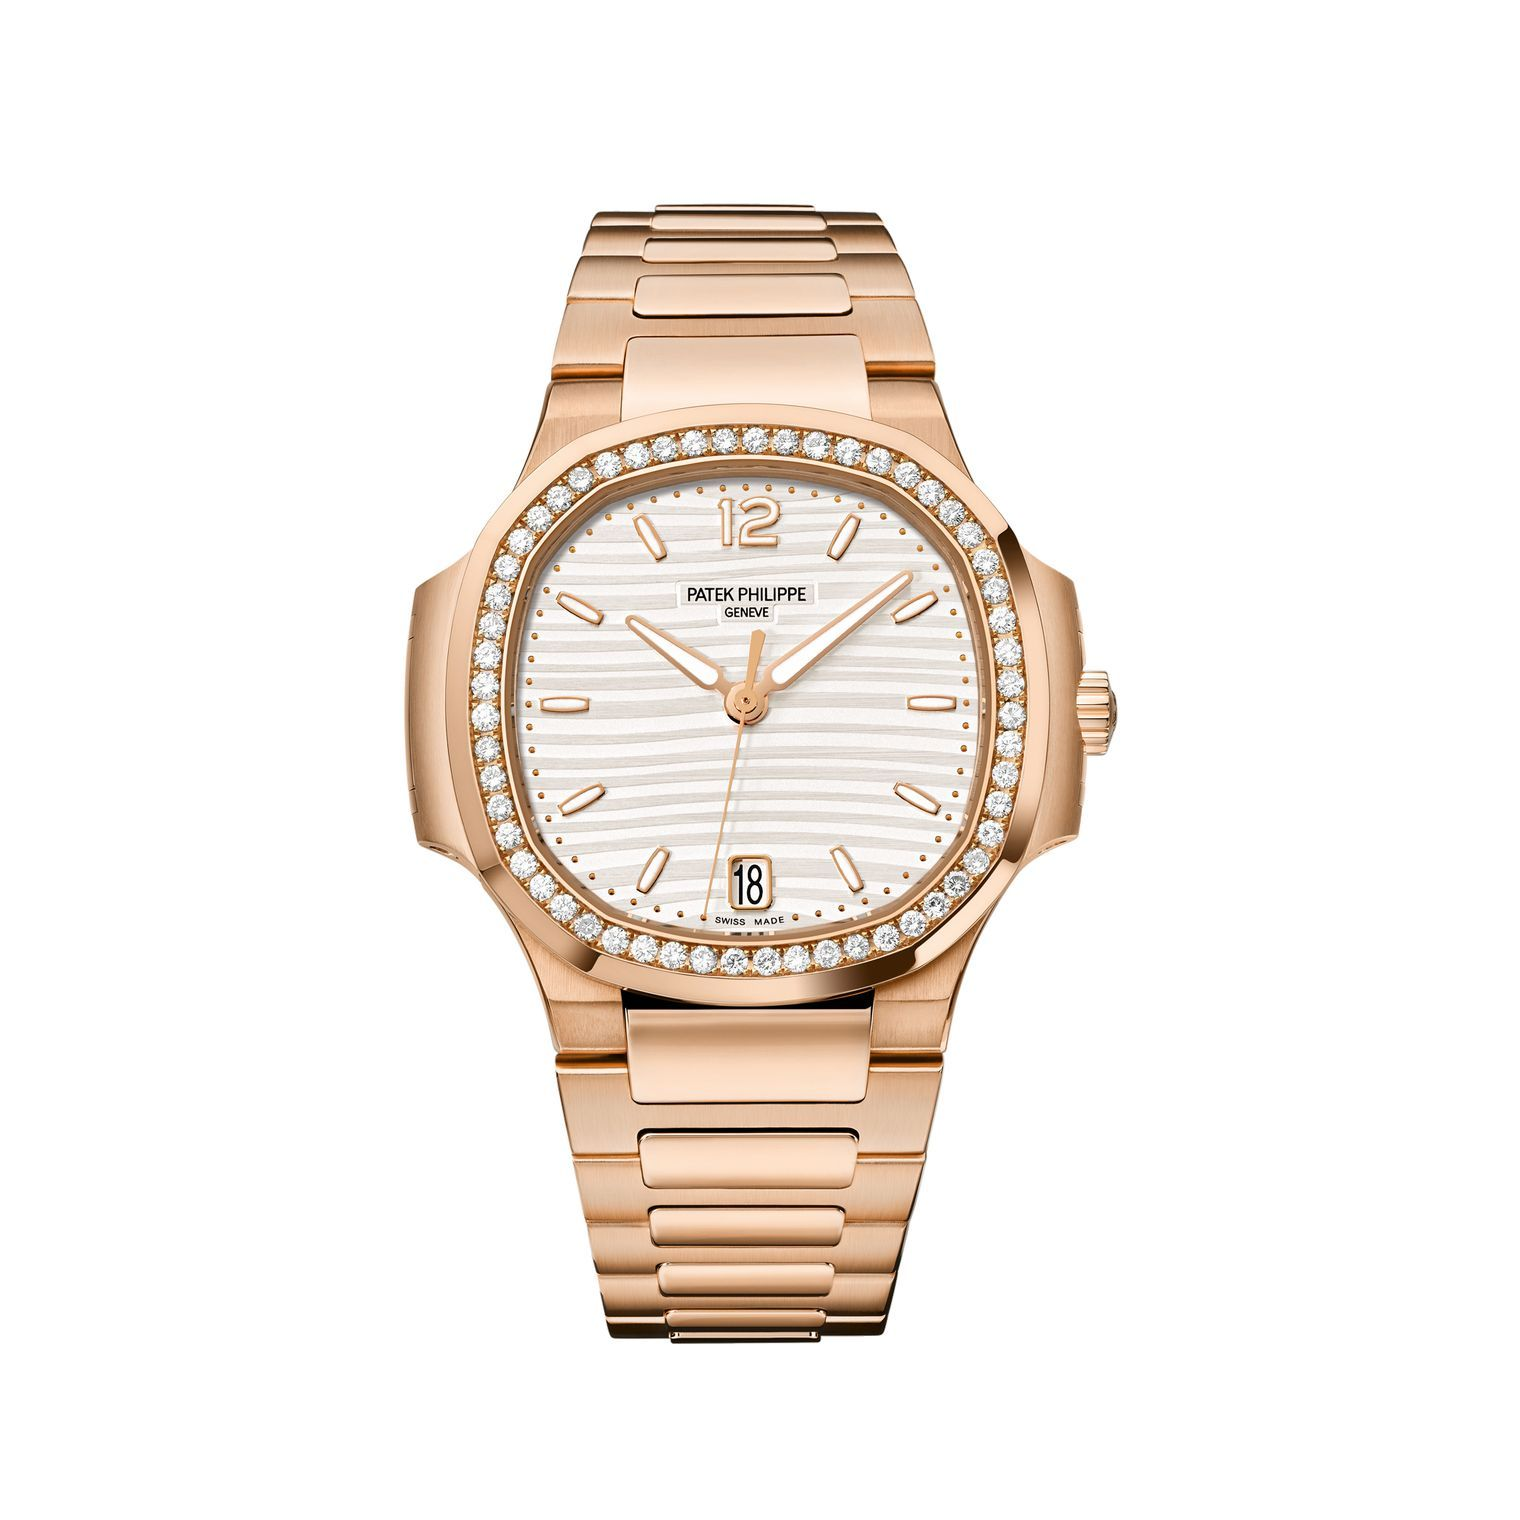 The definitive guide to patek philippe s women s watches of 2015 watching patek philippe for Patek philippe women